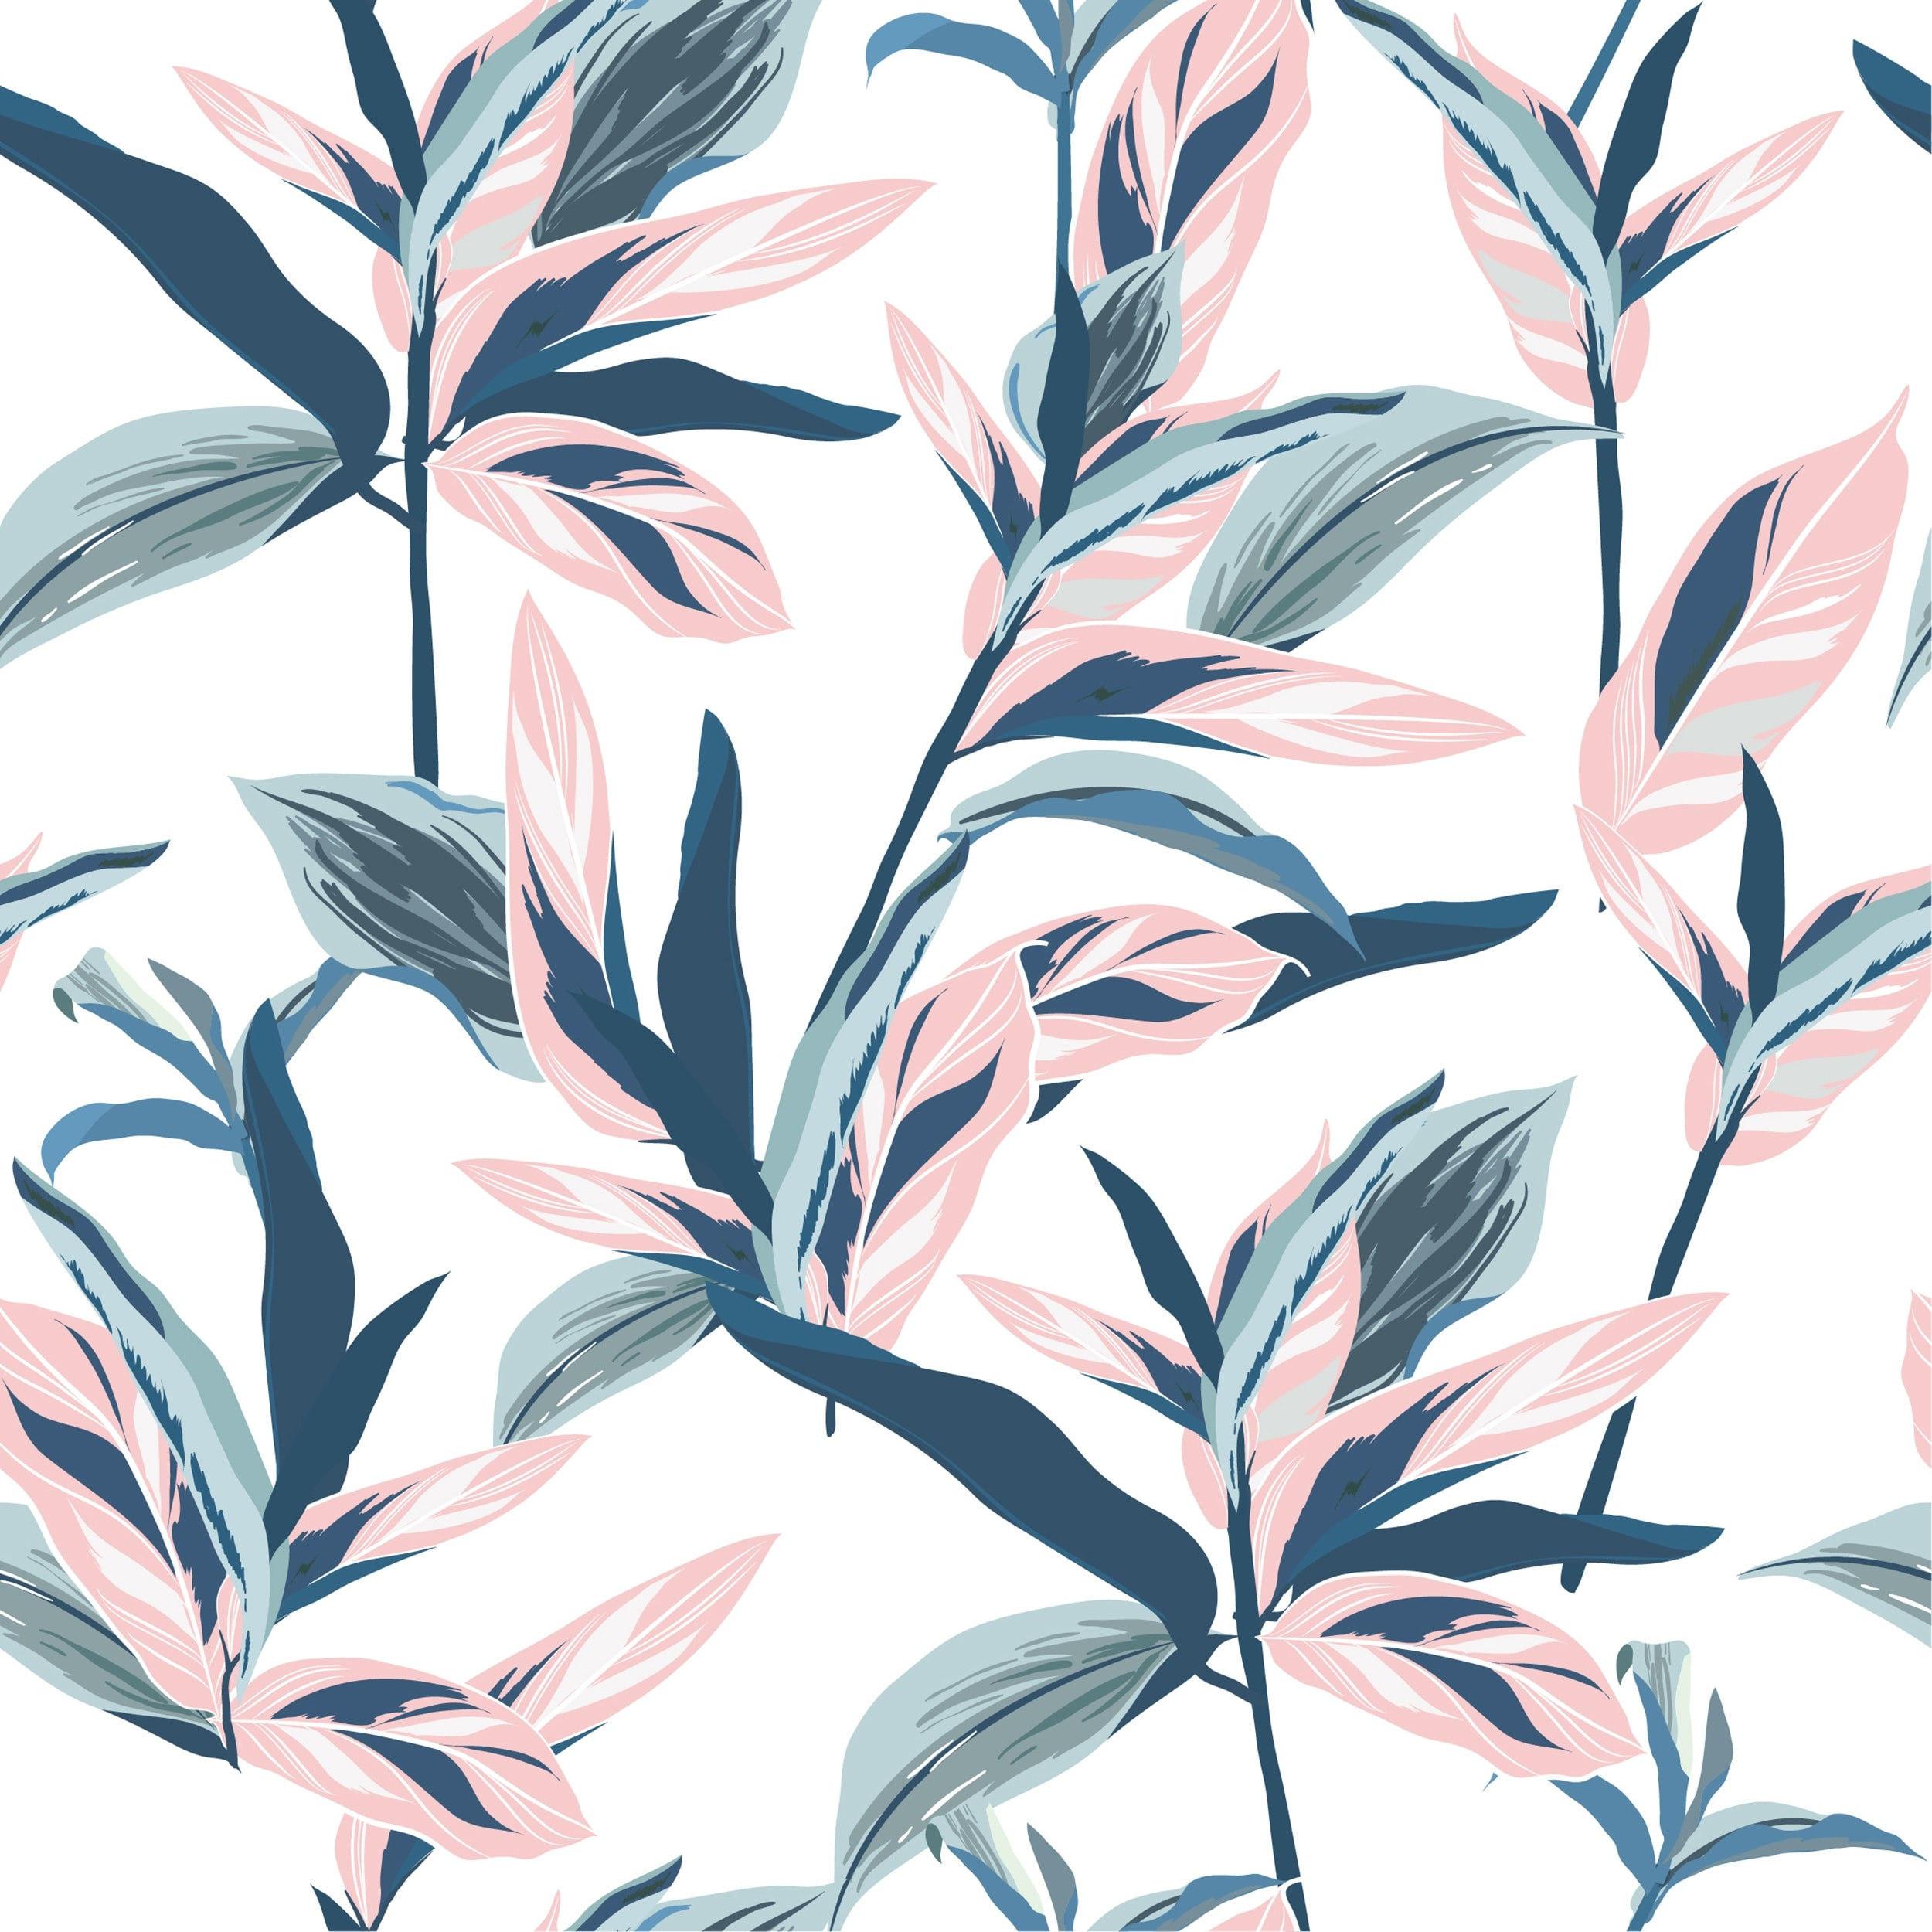 Guava Tropical Leaves Removable Wallpaper 10 Ft H X 24 Inch W Overstock 31718504 Are you searching for tropical leaf png images or vector? guava tropical leaves removable wallpaper 10 ft h x 24 inch w